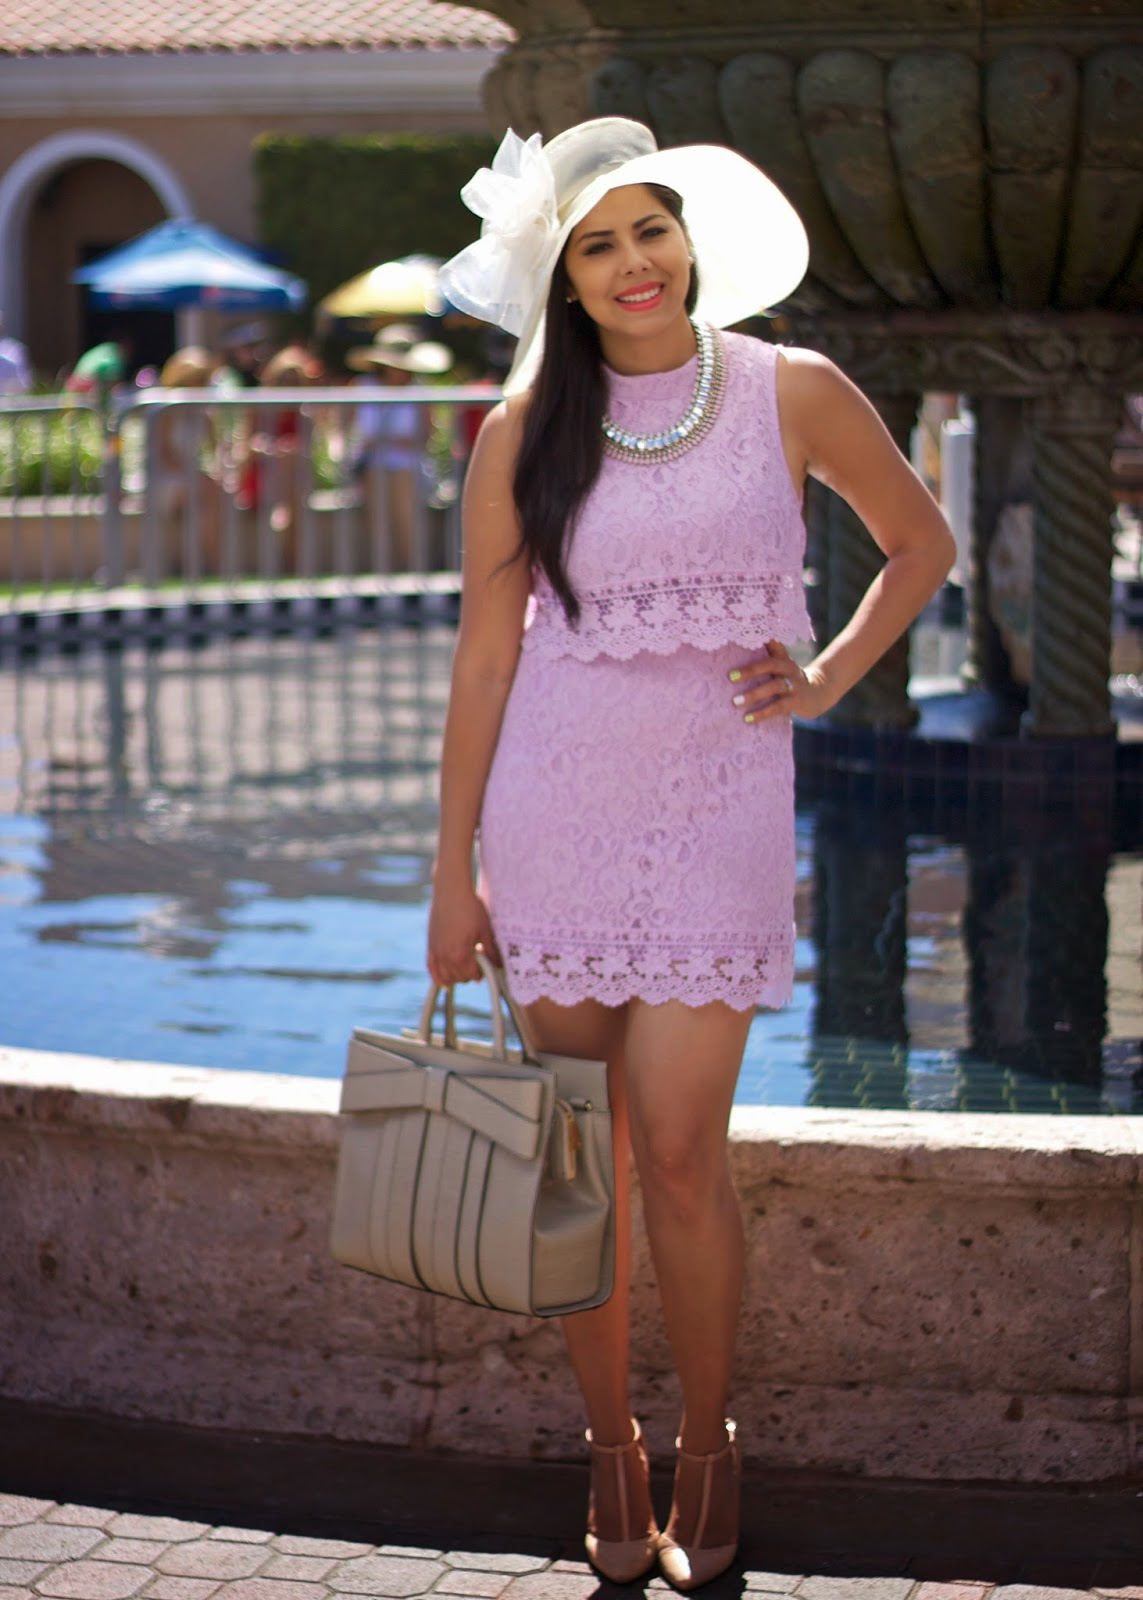 forever 21 lace layered dress, vibrant orchid lace dress, san diego fashion, best of san diego fashion, best san diego fashion blogger, fashion bloggers in so cal, san diego traditions